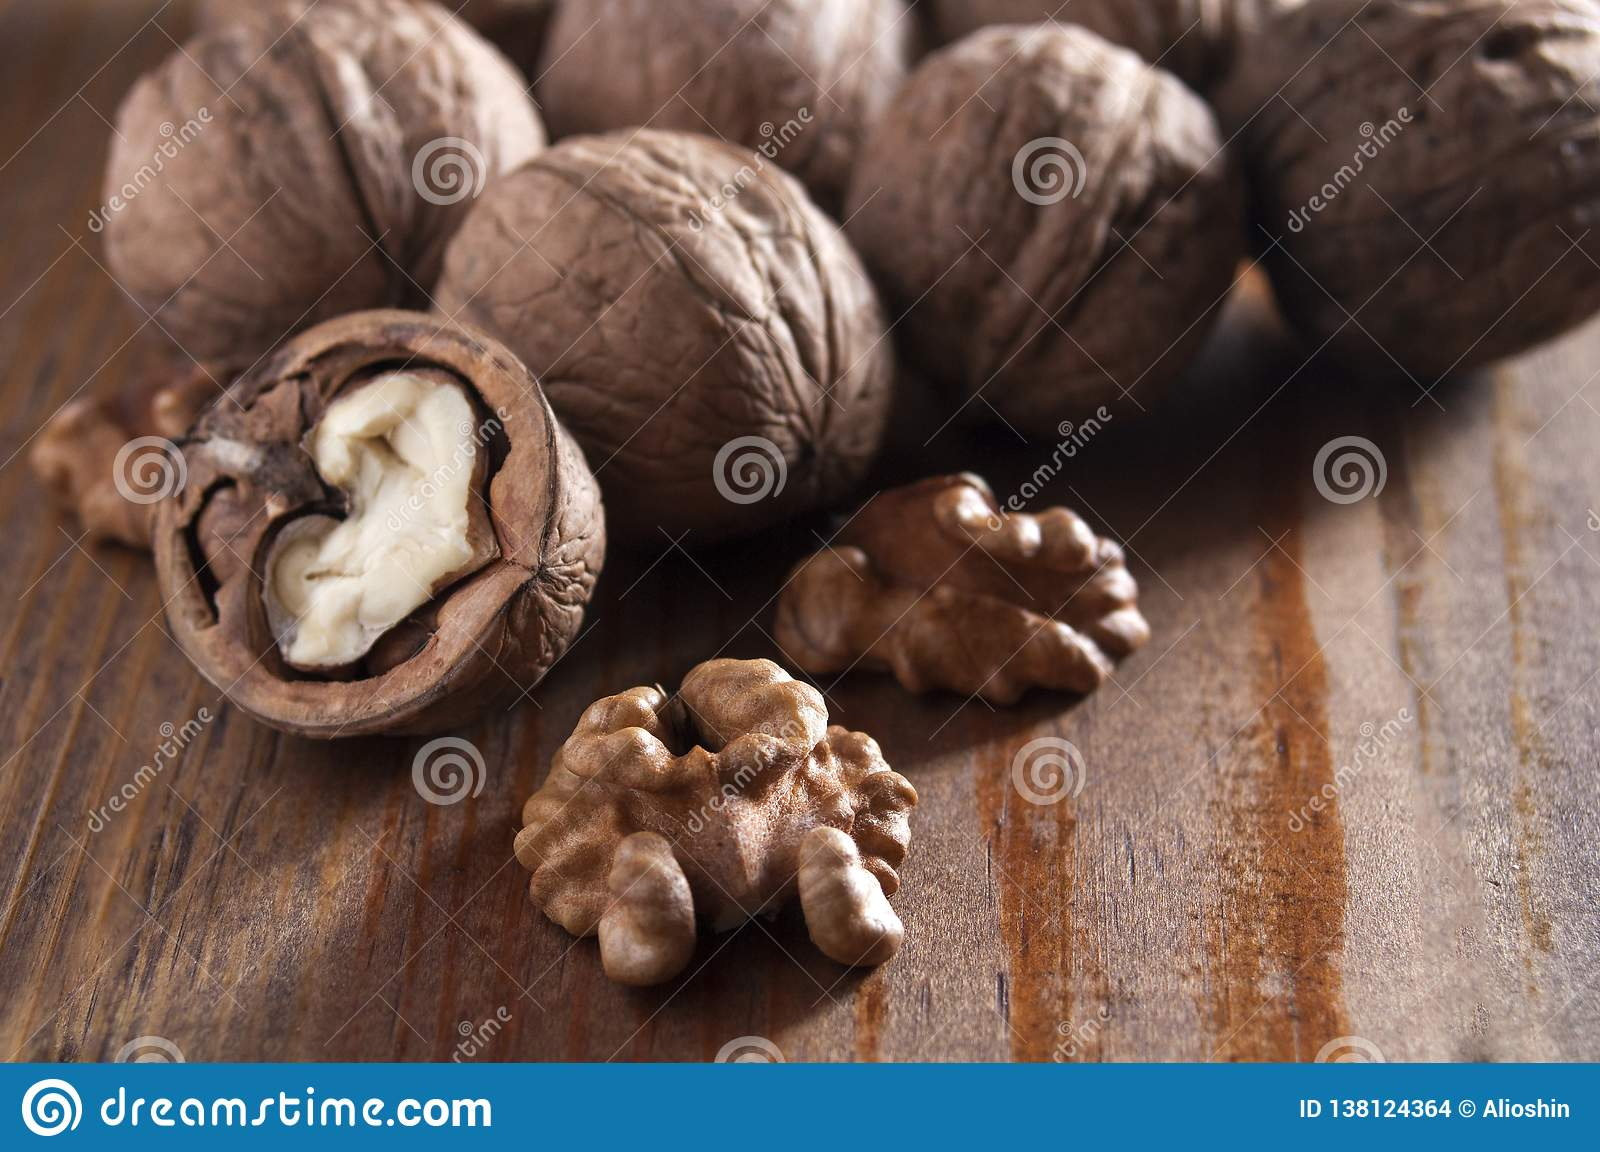 Walnuts peeled and inshell. Brown wooden background. Healthy nutrition, health care, diet. Healthy, fresh and nutritious food